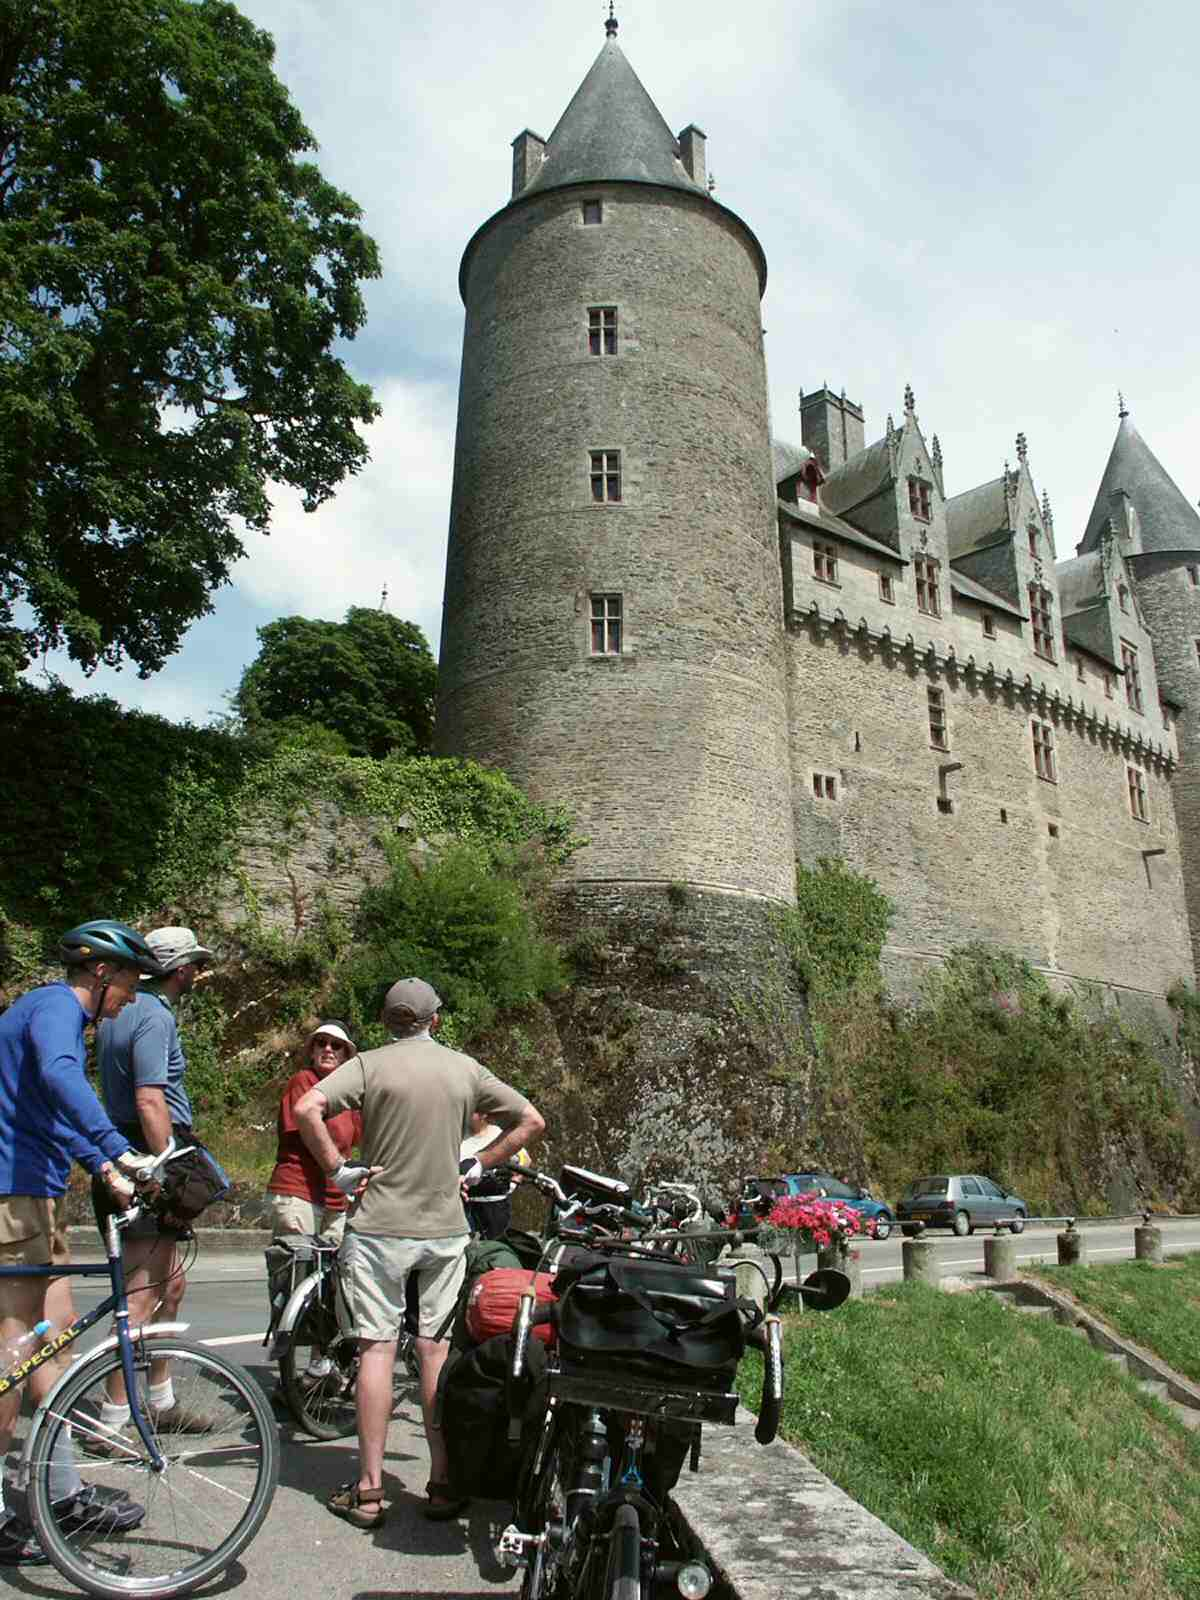 josselin in france